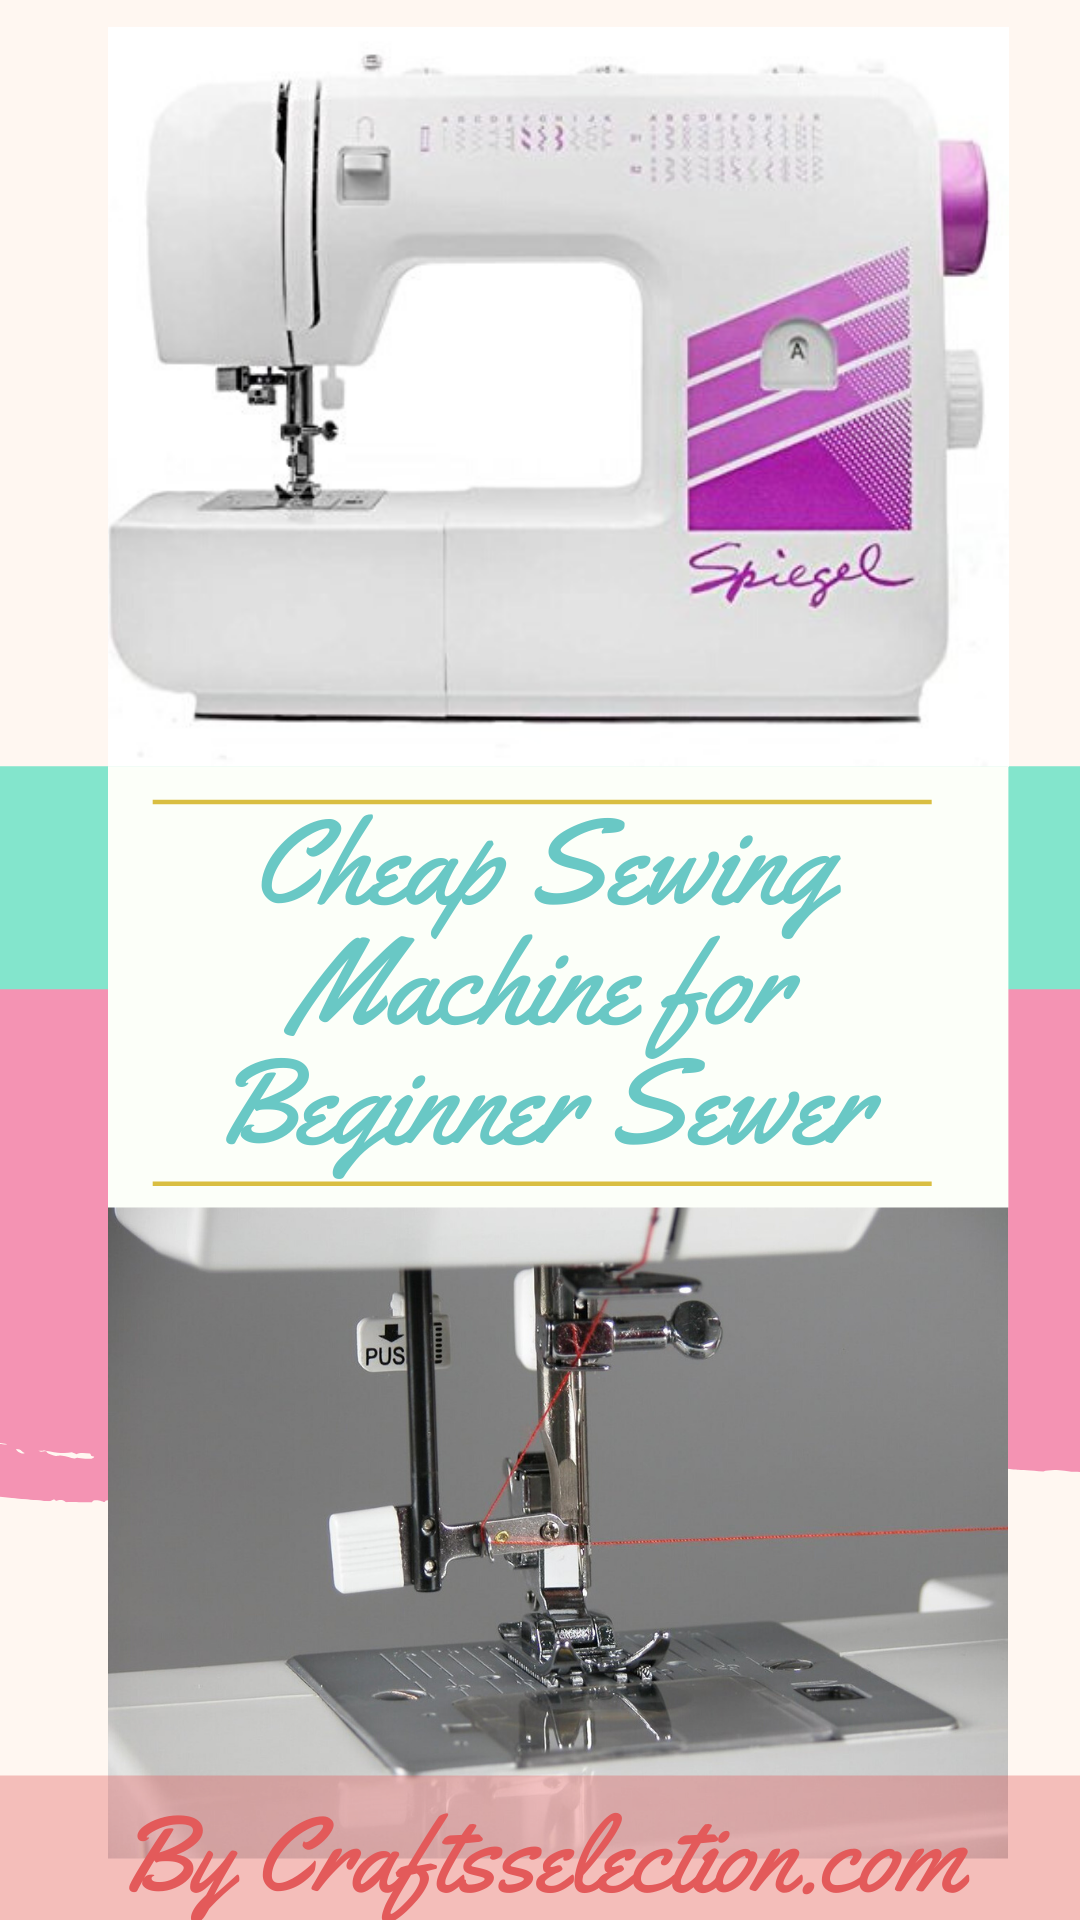 Spiegel SP3201 Review - Good Cheap For Beginners   Sewing ...